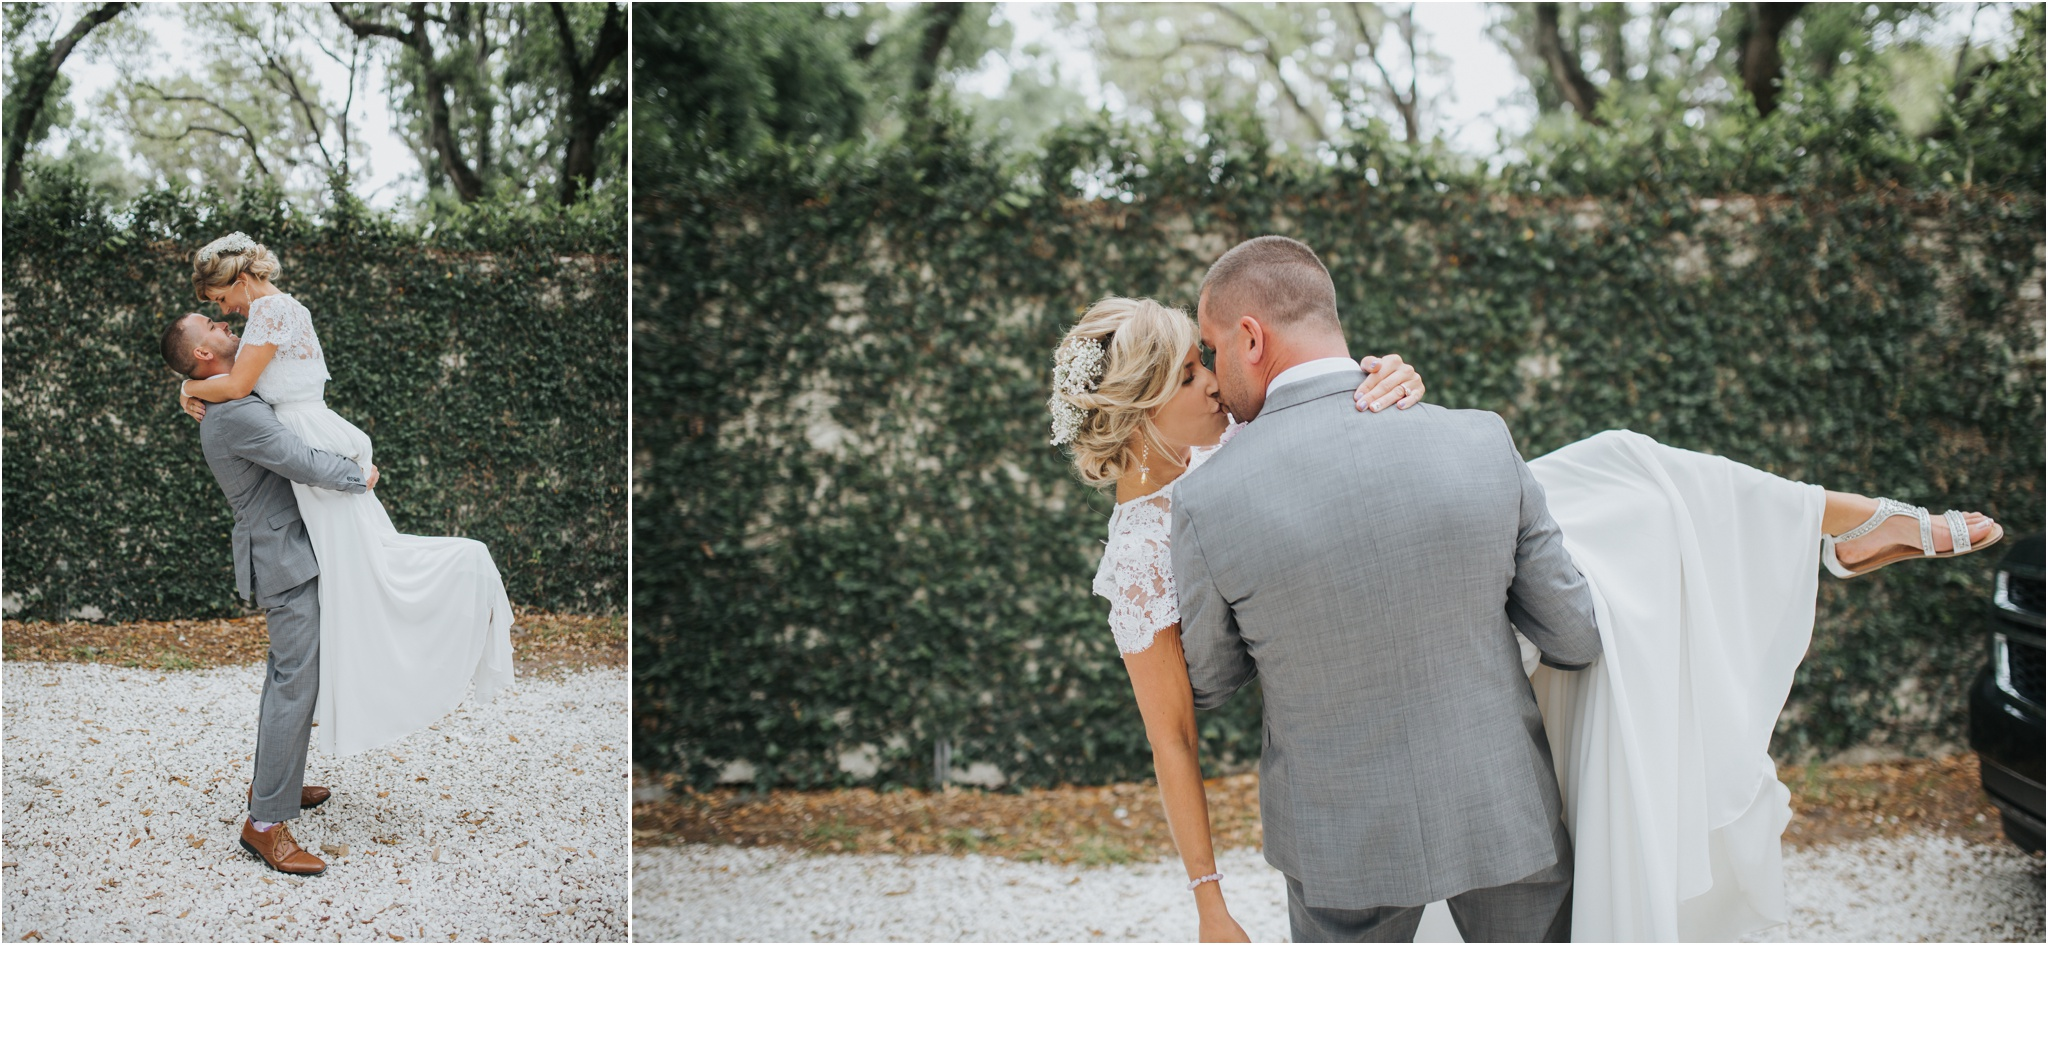 Rainey_Gregg_Photography_St._Simons_Island_Georgia_California_Wedding_Portrait_Photography_1529.jpg